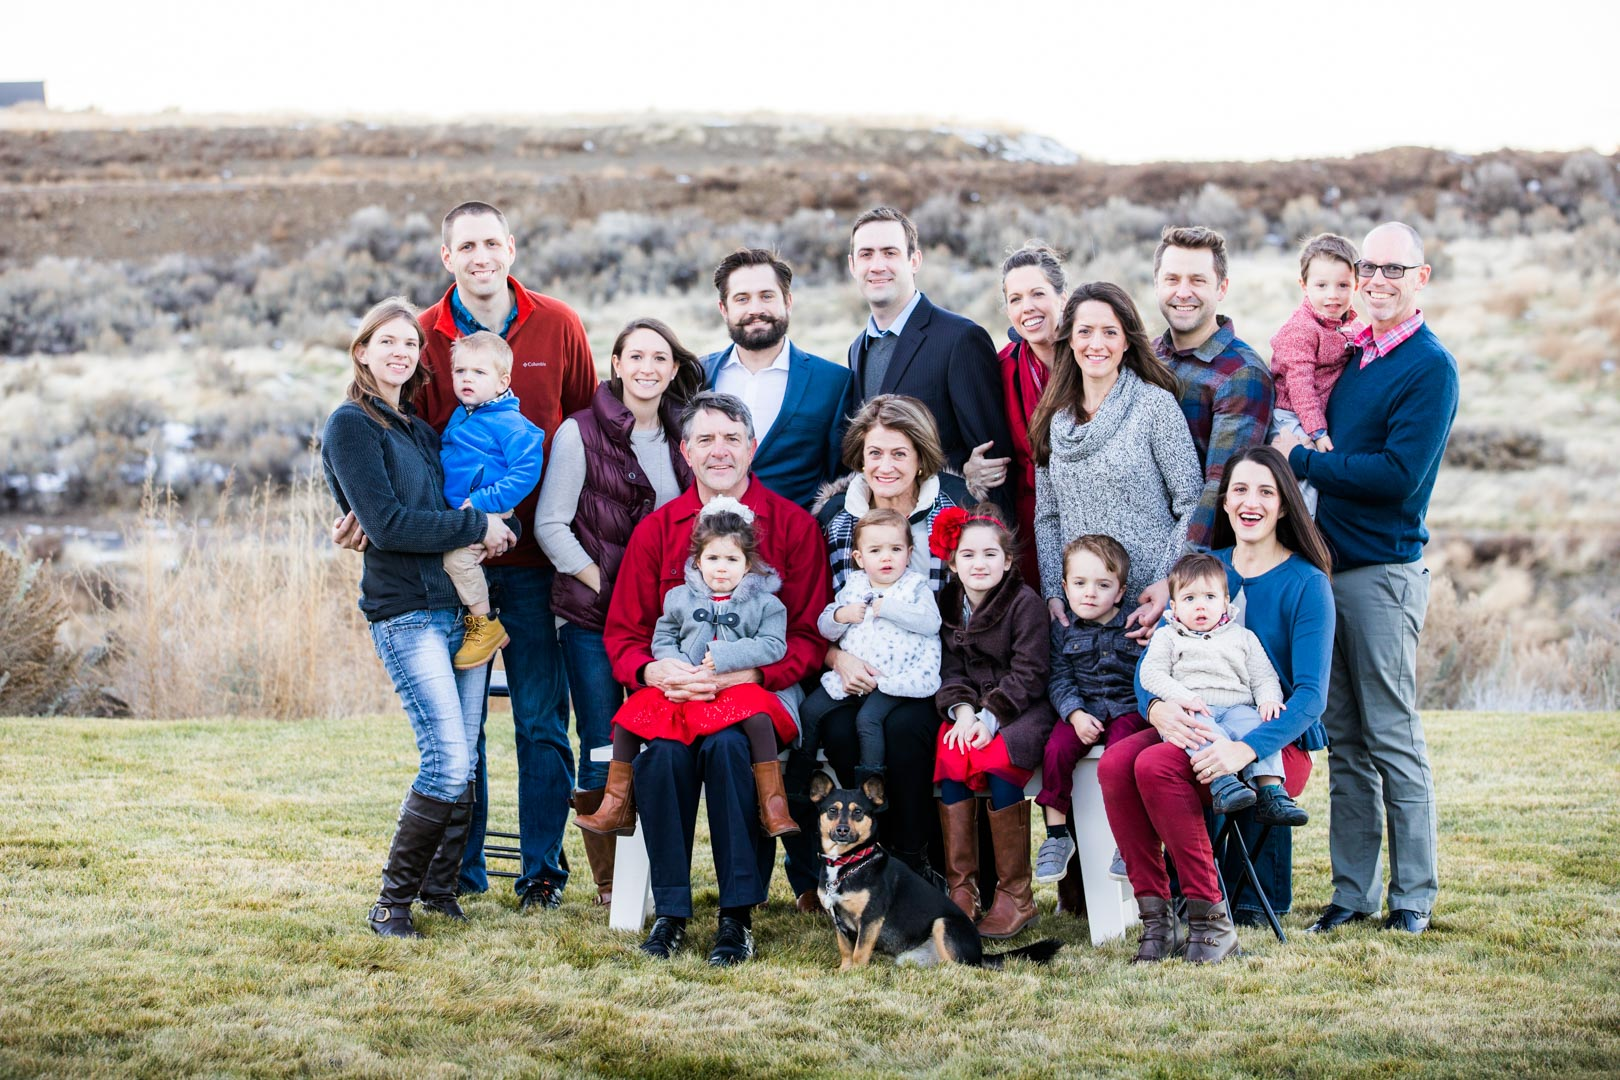 Up to $75 off Family Portraits - Save 20% — that's over $75 off the 1-hour package. Good through January 31st. See our Family Portraits Portfolio and Pricing. Use Code JANFAM.